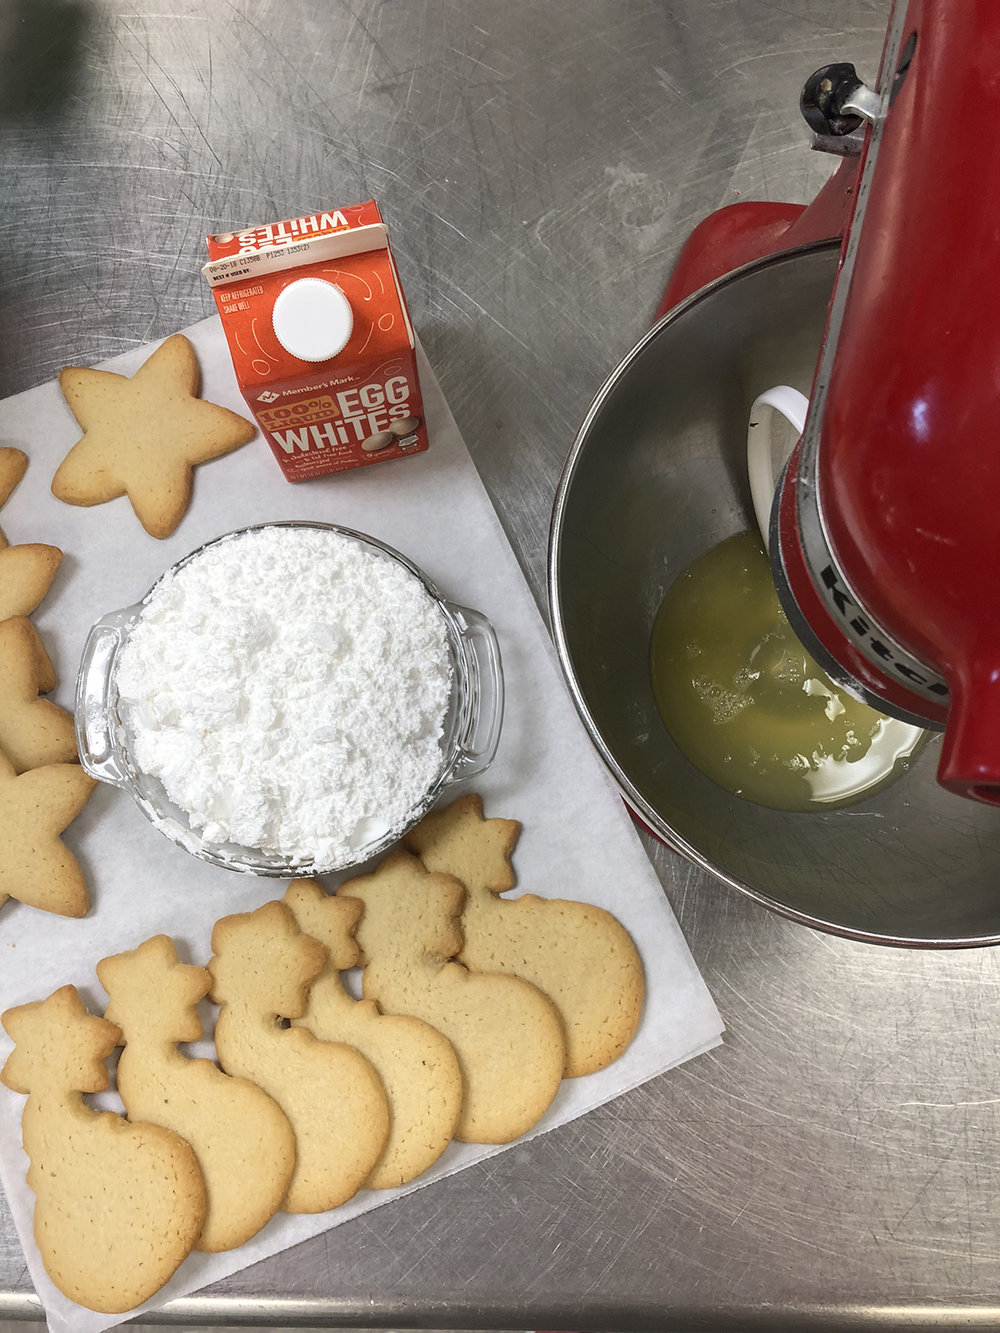 Sugar CookiesRoyal Icing - 3 oz (6 tablespoons) pasteurized egg whites from a carton (see note)4 cups confectioners sugar1 t vanillaFood coloring (optional)